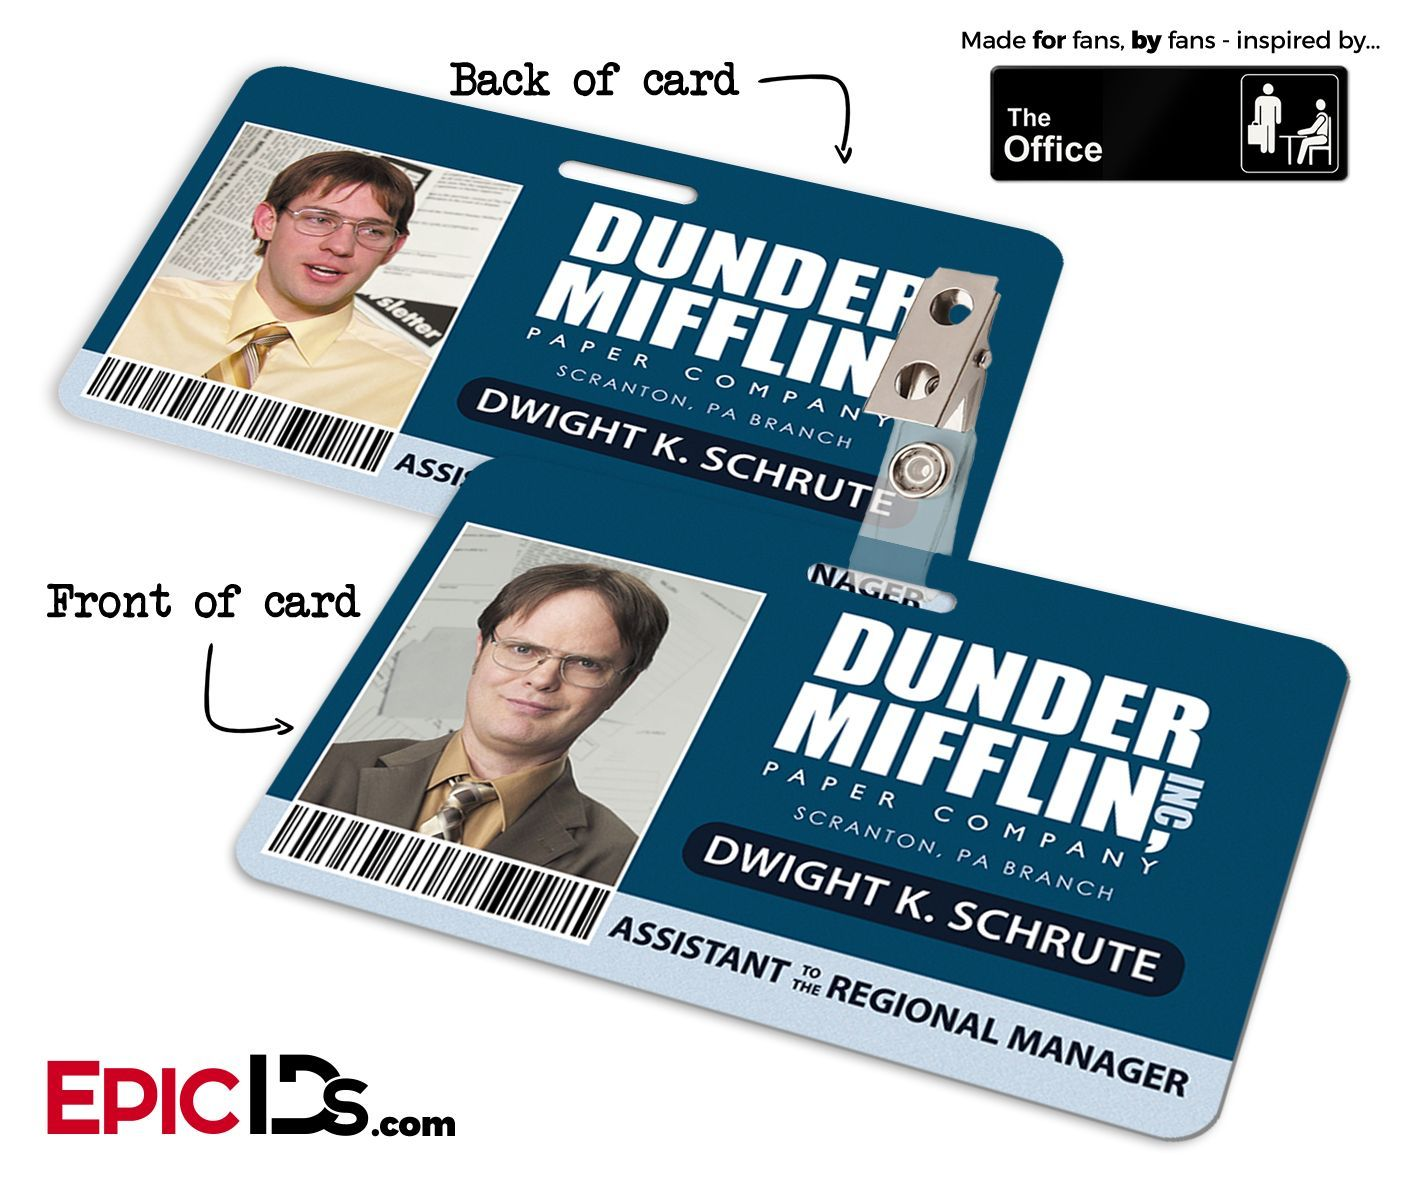 picture about Dunder Mifflin Name Tag Printable named The Office environment Motivated - Dunder Mifflin Personnel Identification Badge